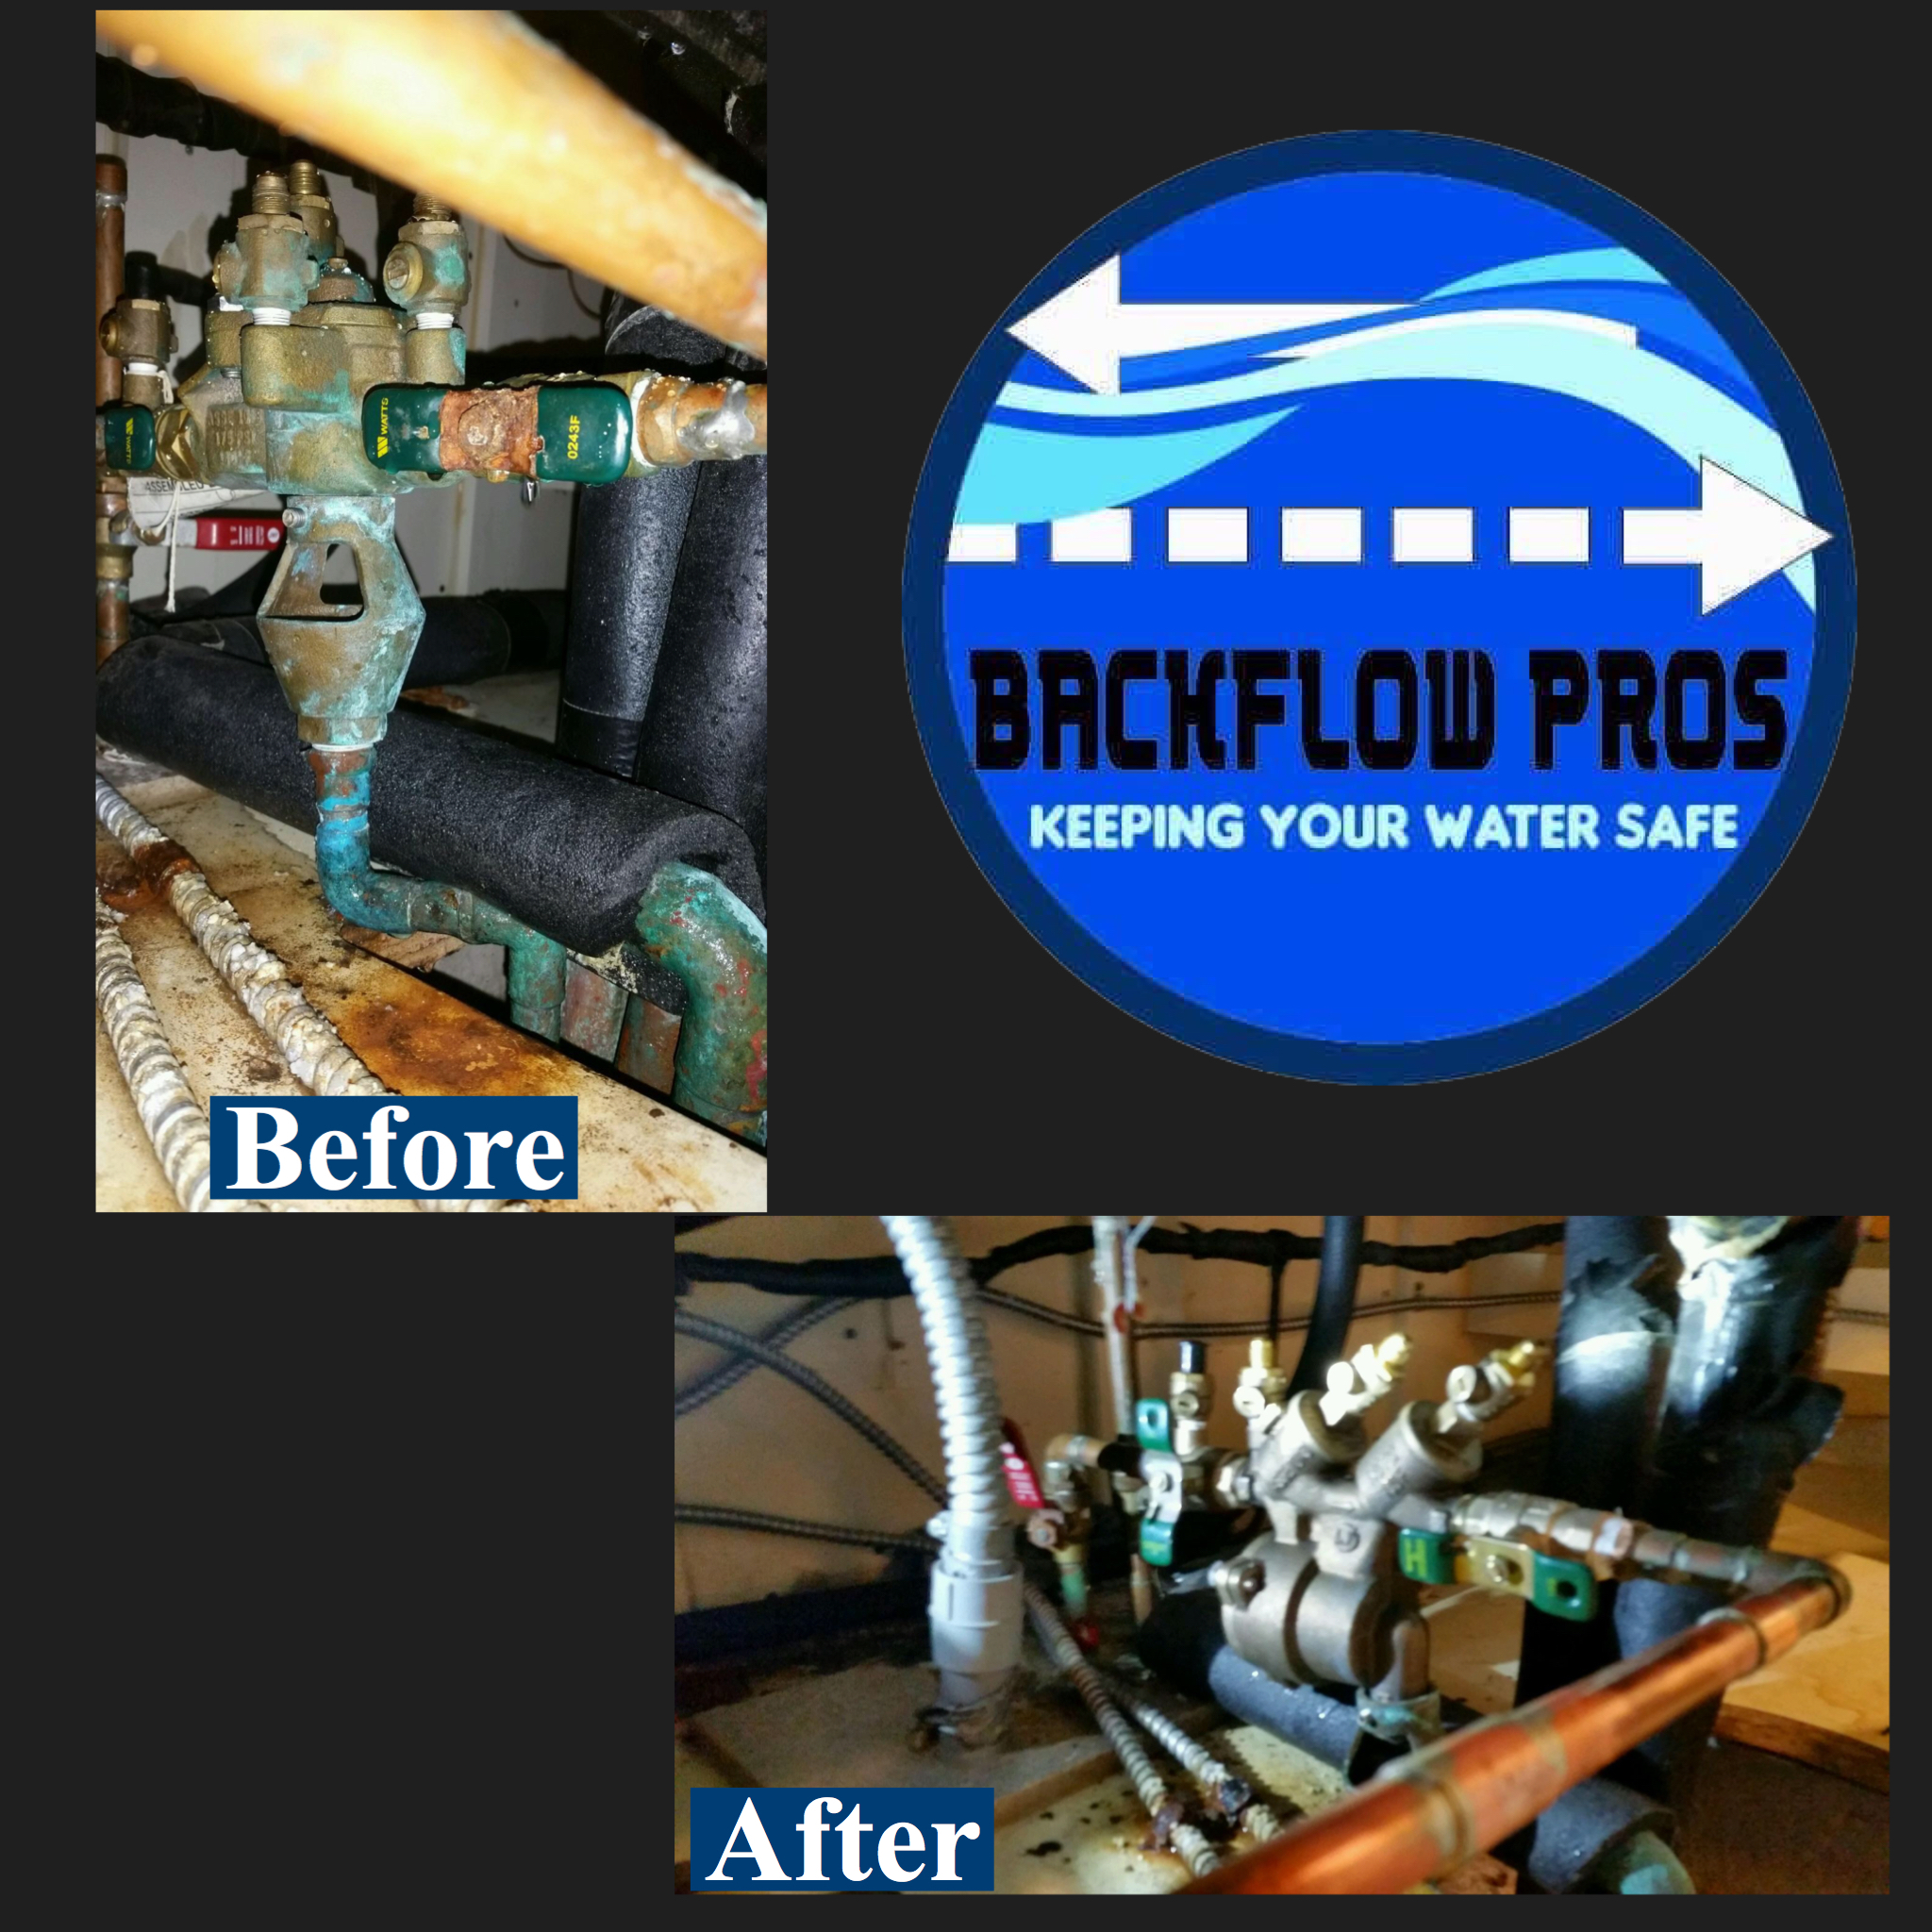 Backflow Pros image 6